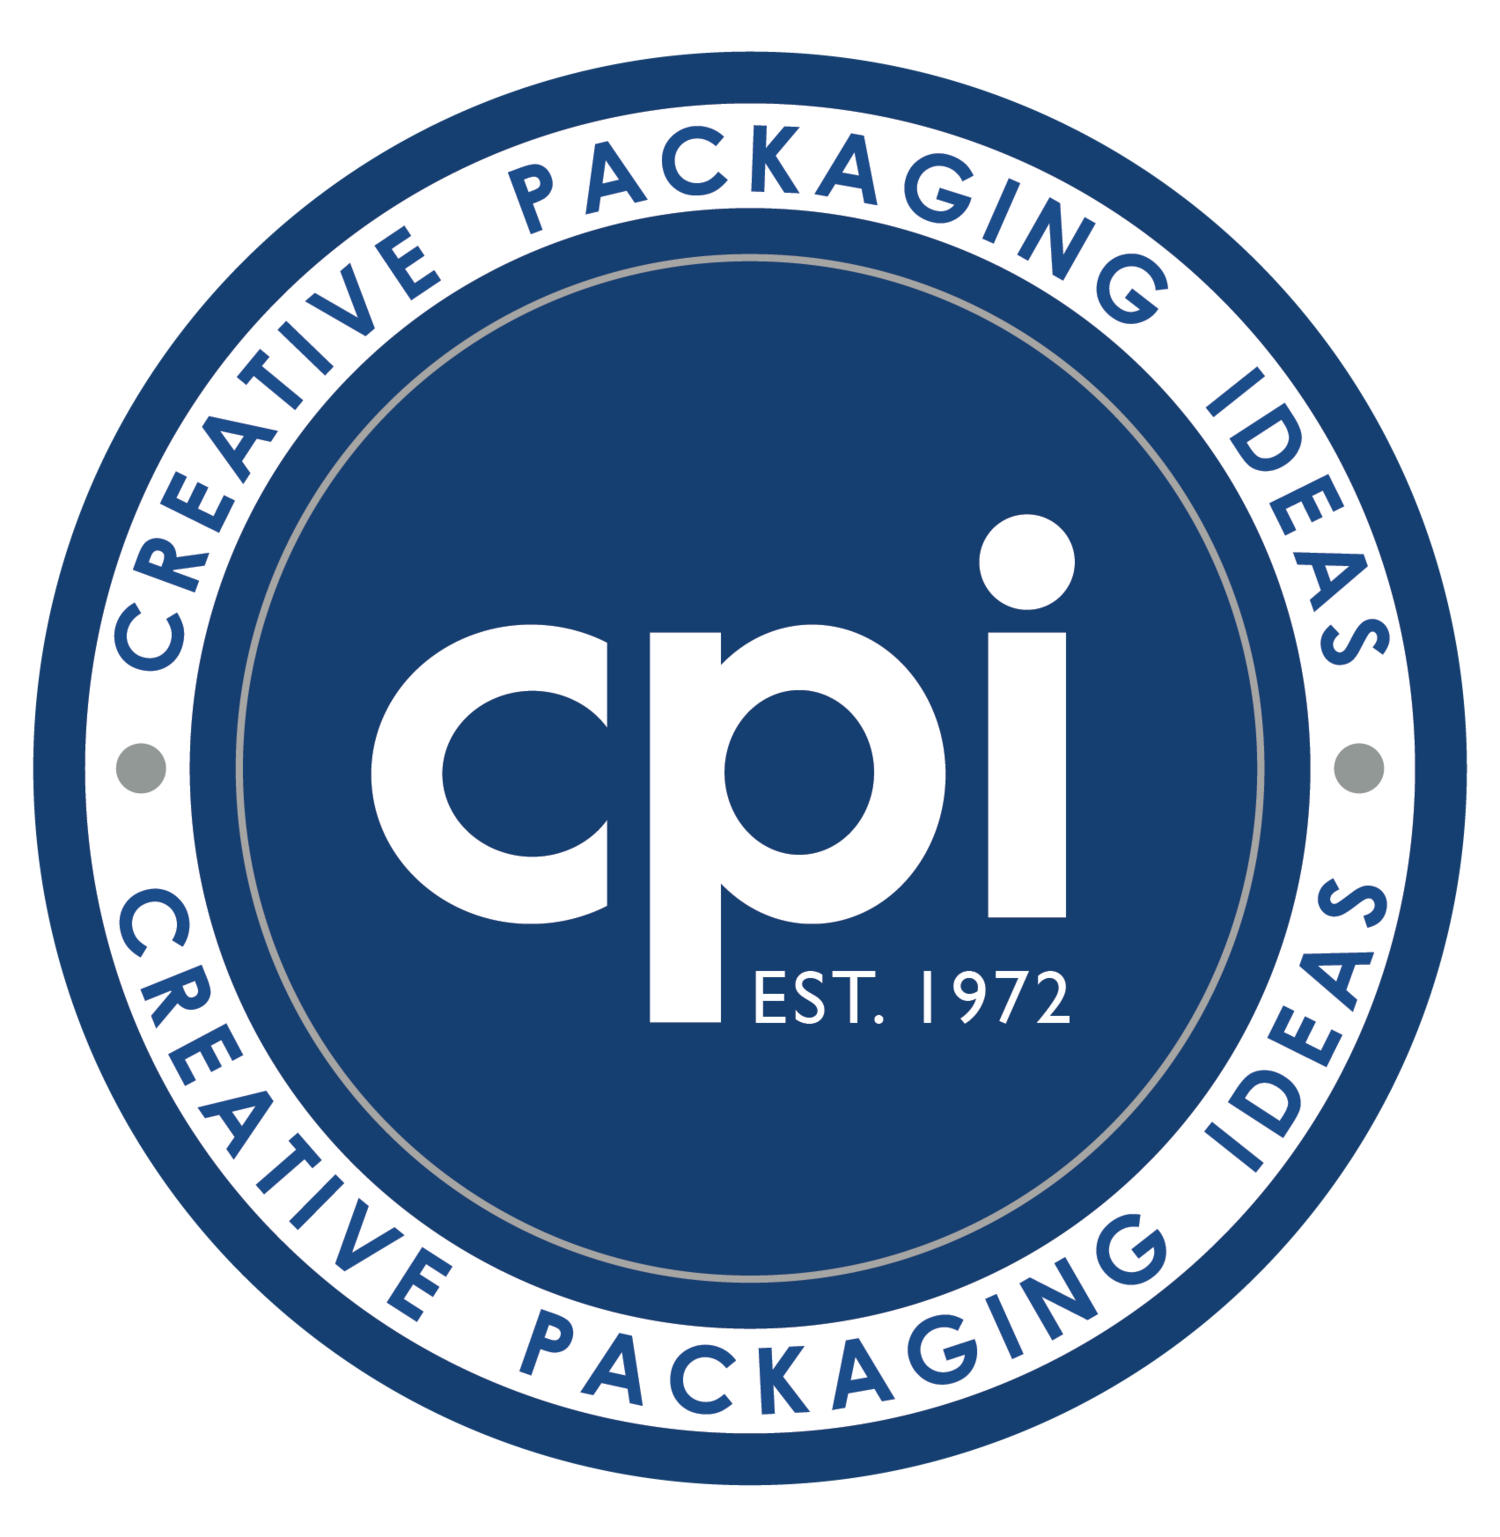 CPI Packaging